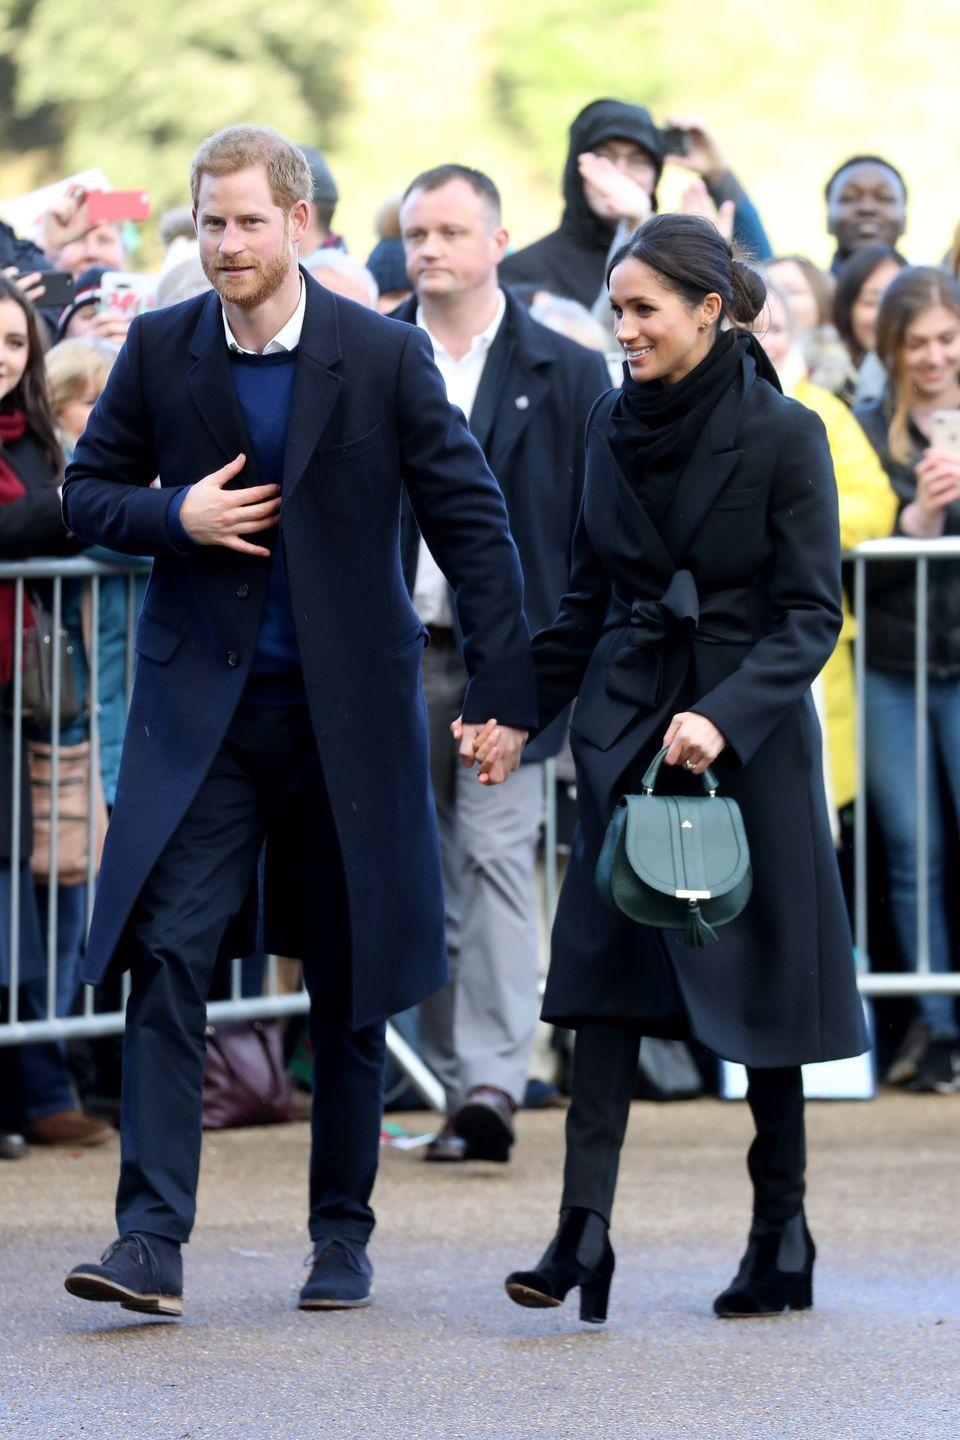 "<p><a href=""https://www.townandcountrymag.com/society/tradition/g15384292/prince-harry-meghan-markle-third-official-appearance-photos/"" rel=""nofollow noopener"" target=""_blank"" data-ylk=""slk:See every photo from their royal outing in Wales here."" class=""link rapid-noclick-resp"">See every photo from their royal outing in Wales here. </a></p>"